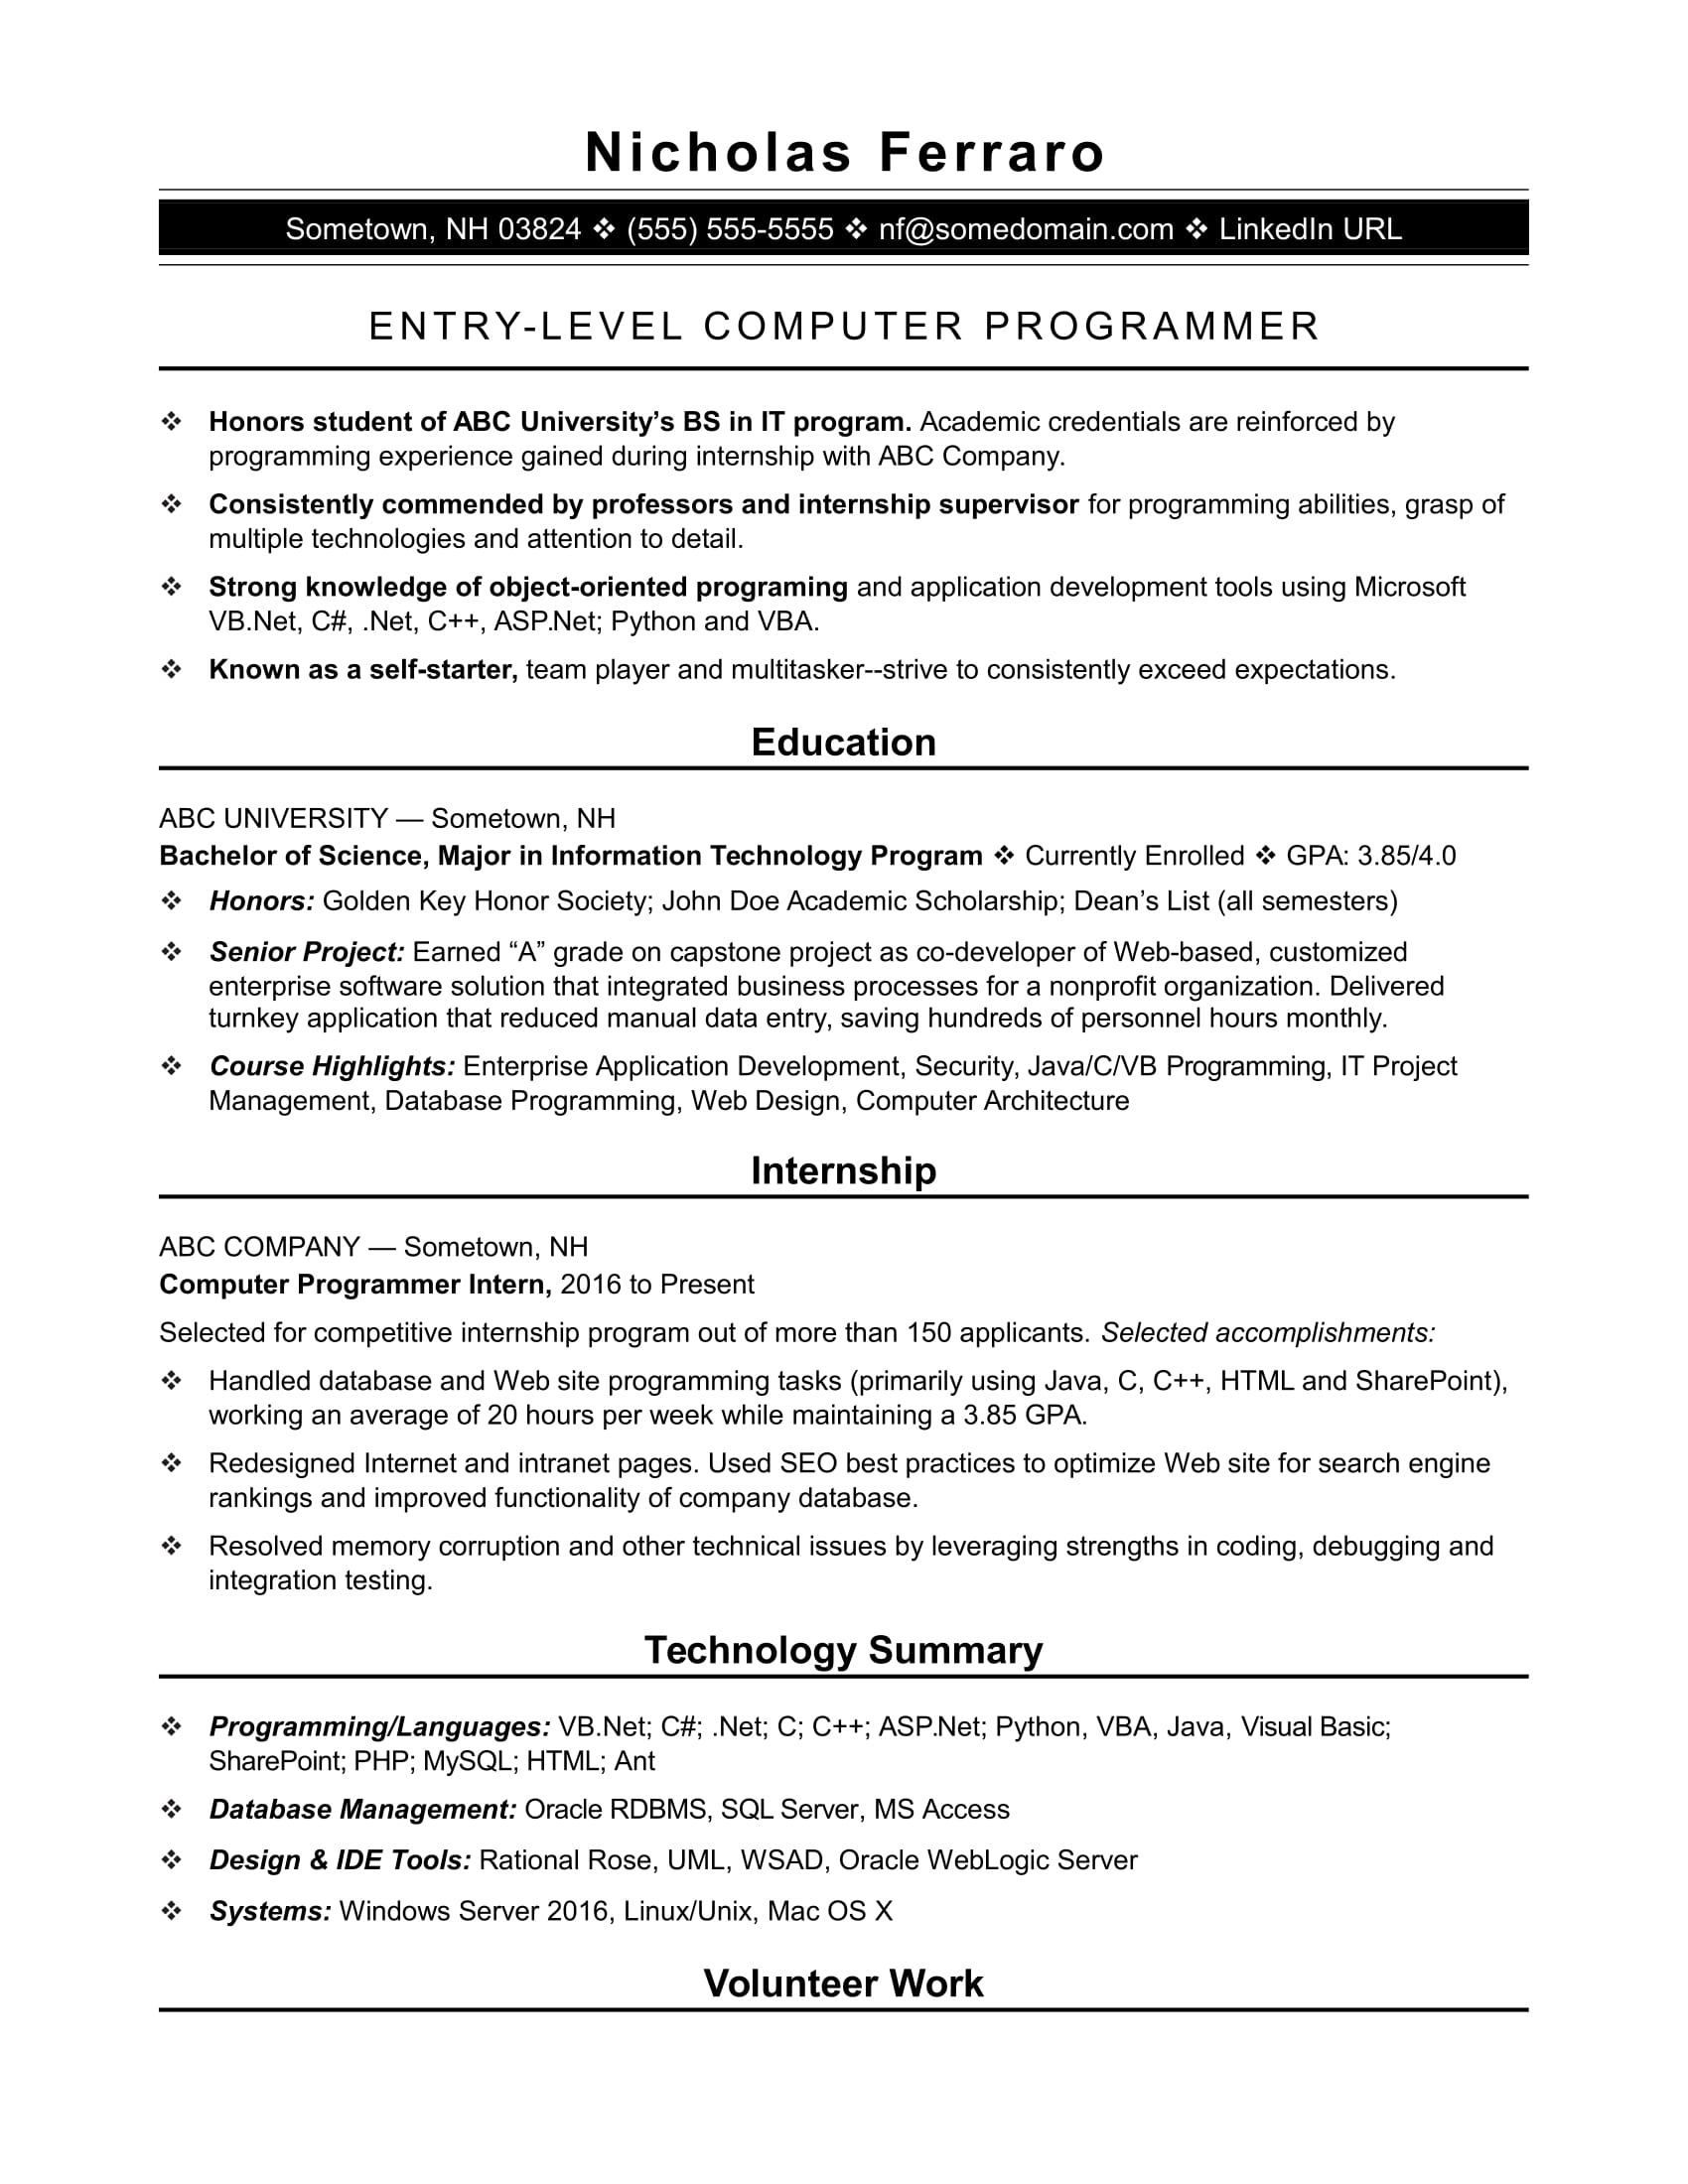 sample resume for an entry level computer programmer - Resume Template Without Education